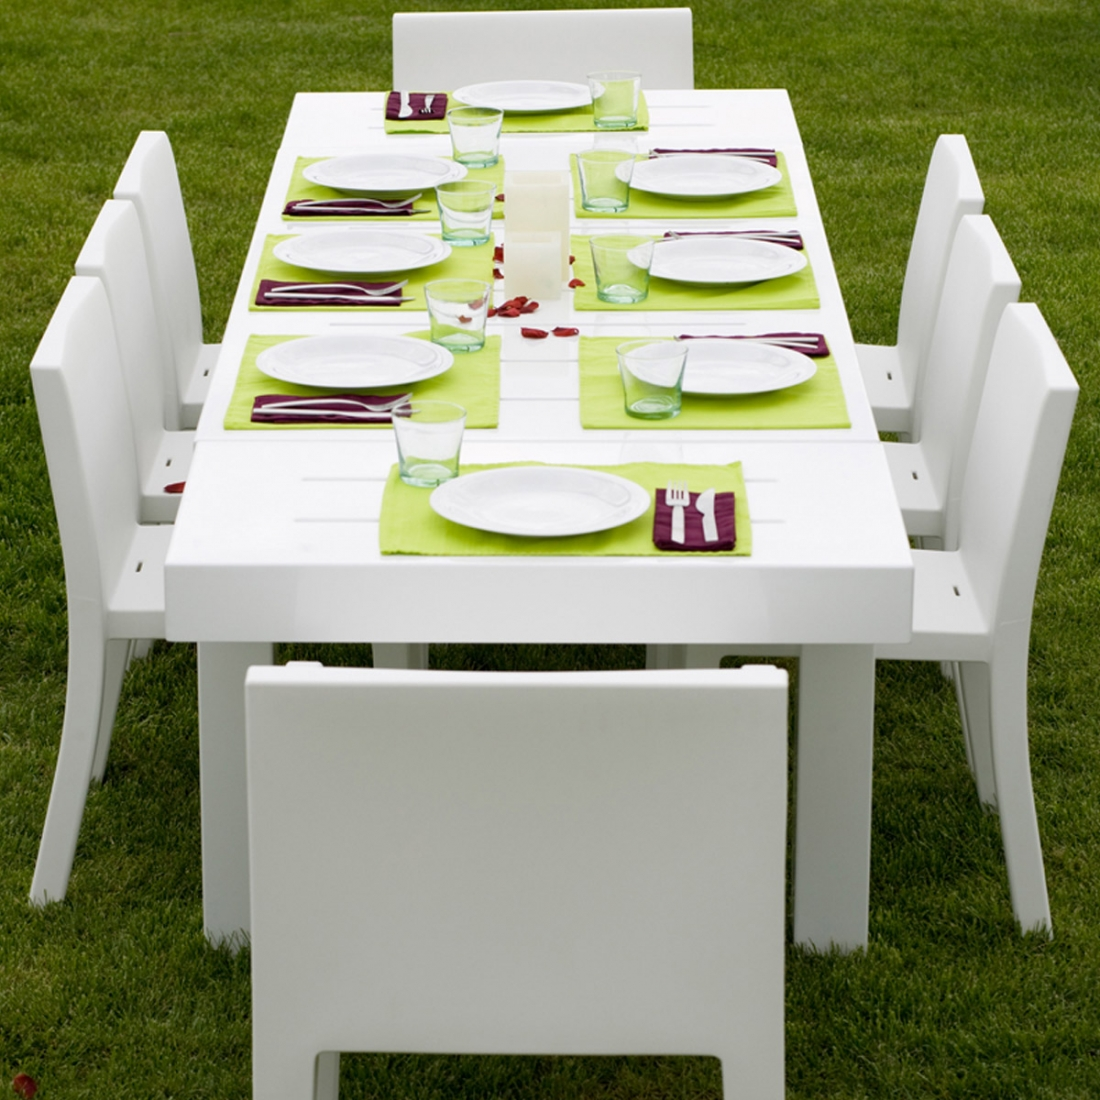 Table de jardin design 12 personnes jut par vondom for Jardin design exterieur